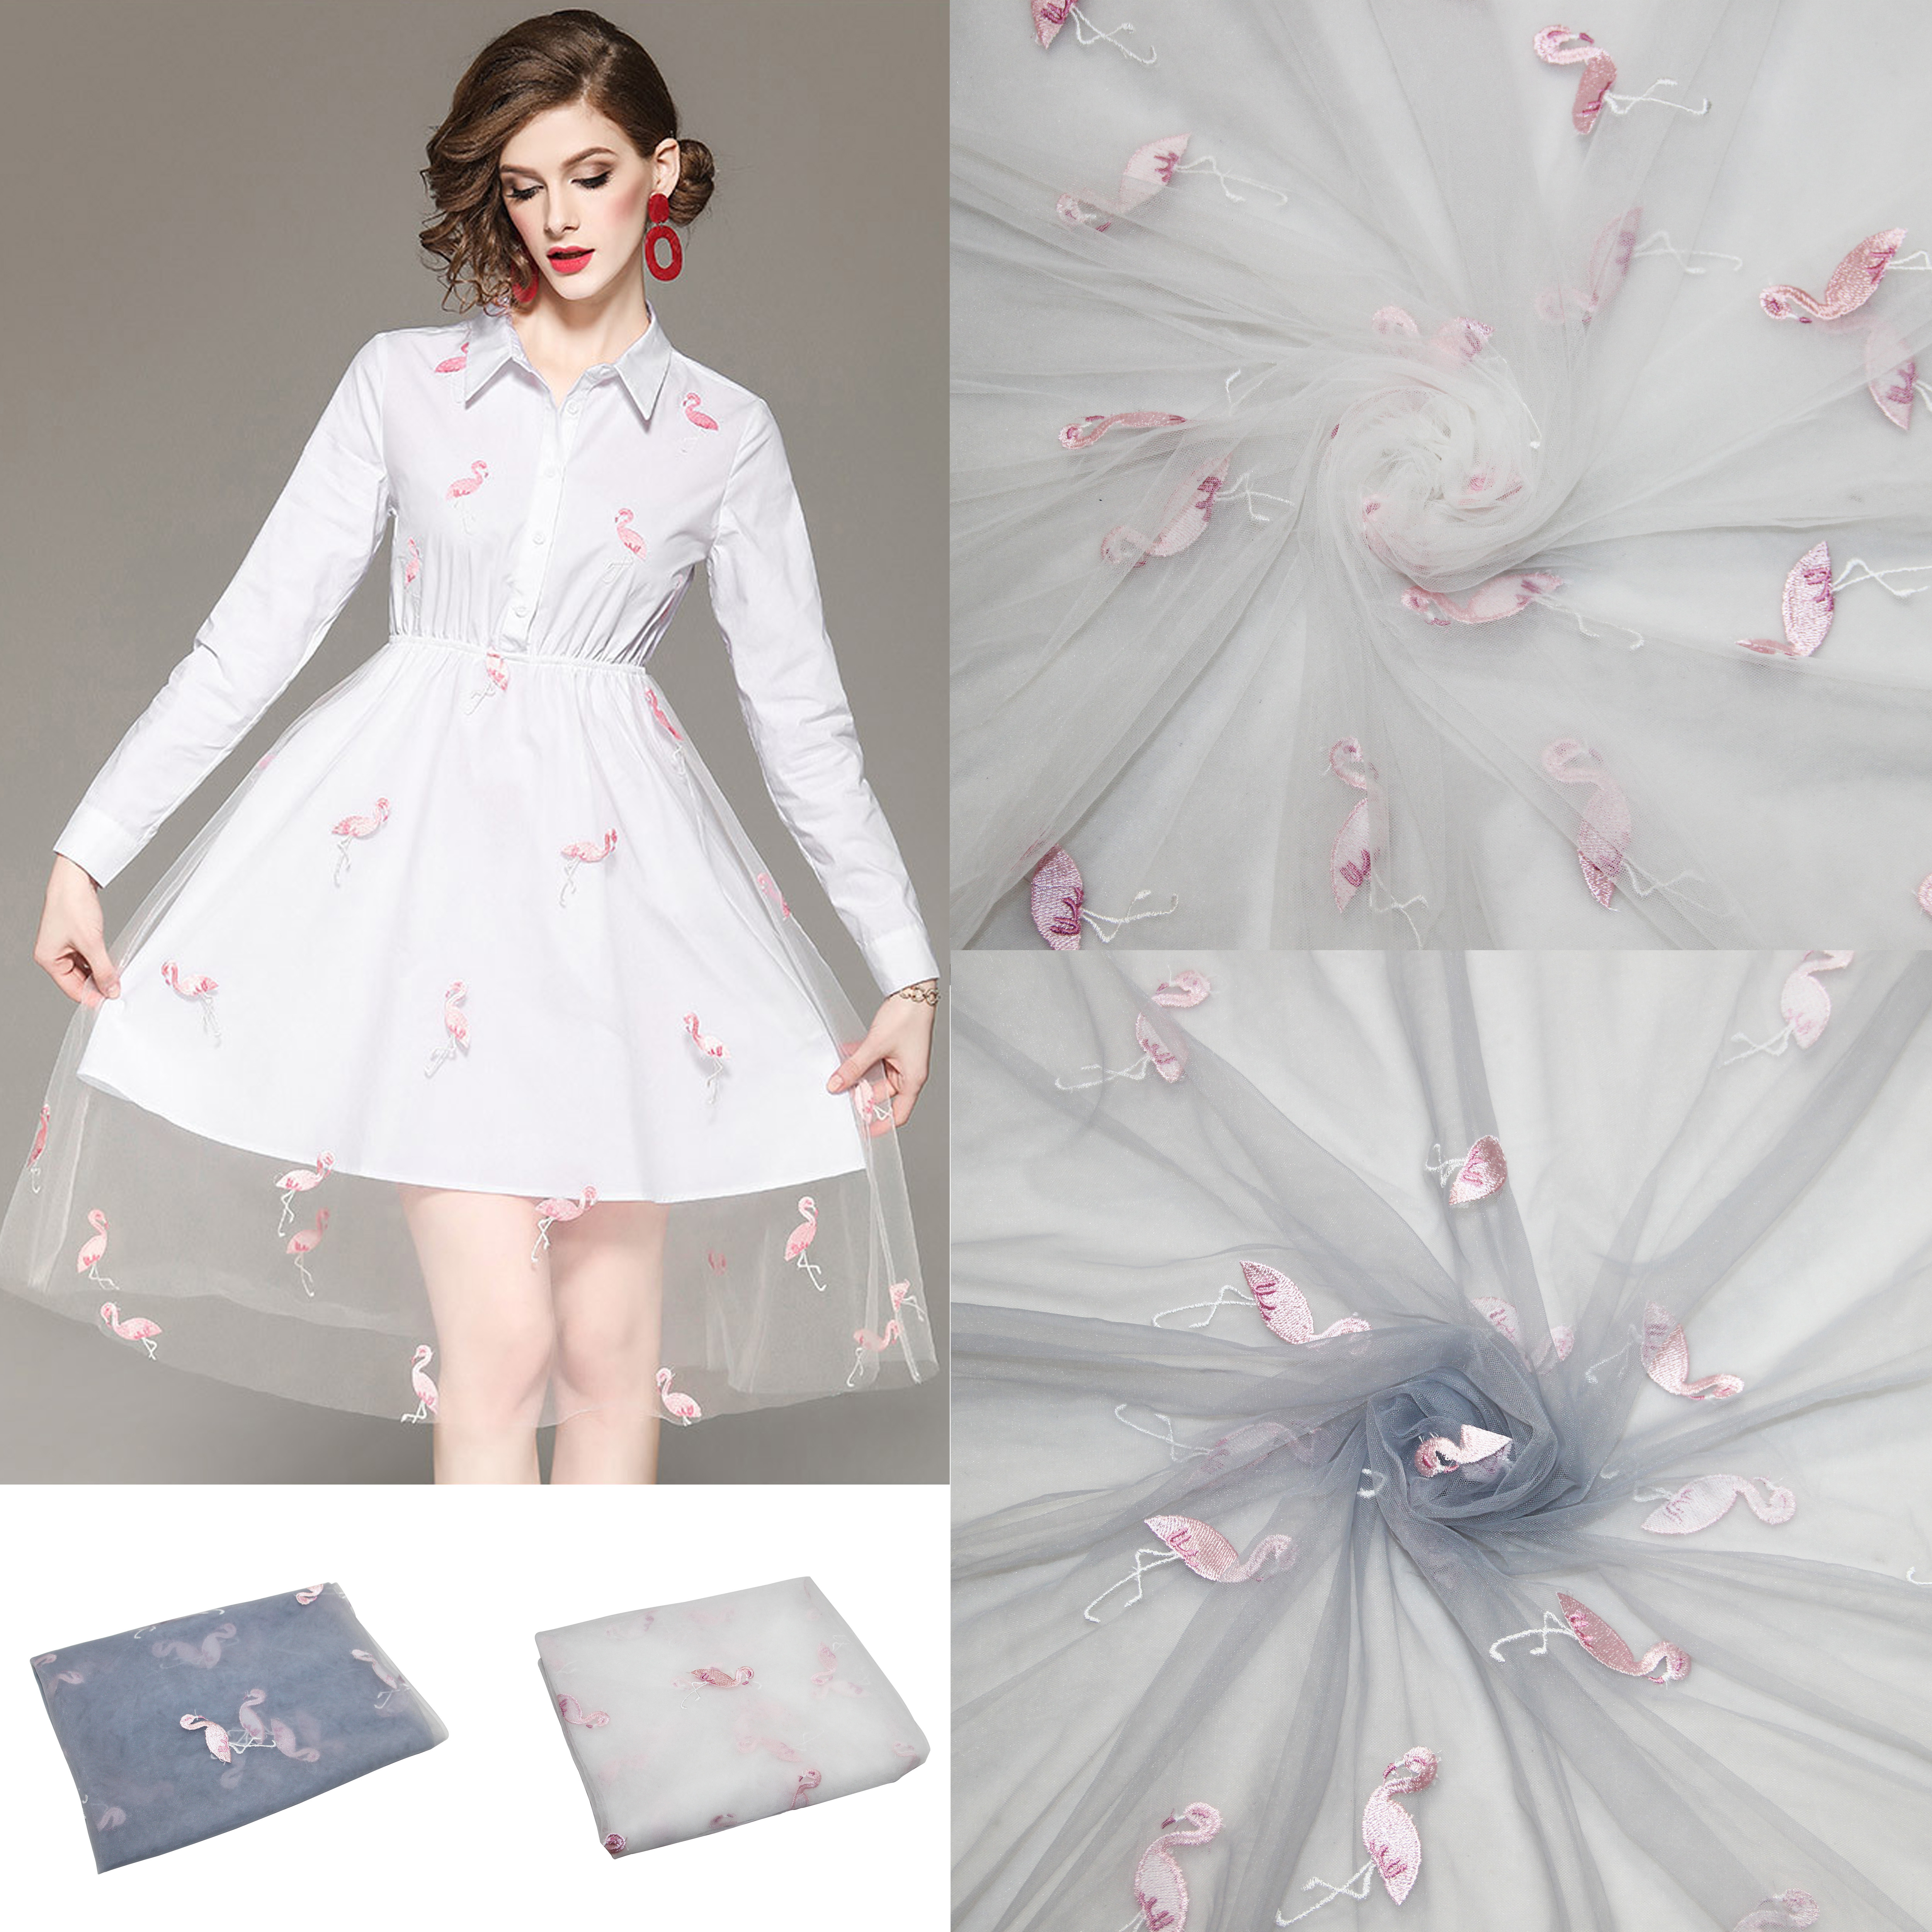 3meters Nylon Flamingos Embroidered Soft Mesh Tulle Fabric Environmental Protection Fabric Accessory For DIY Wedding Tutu Dress